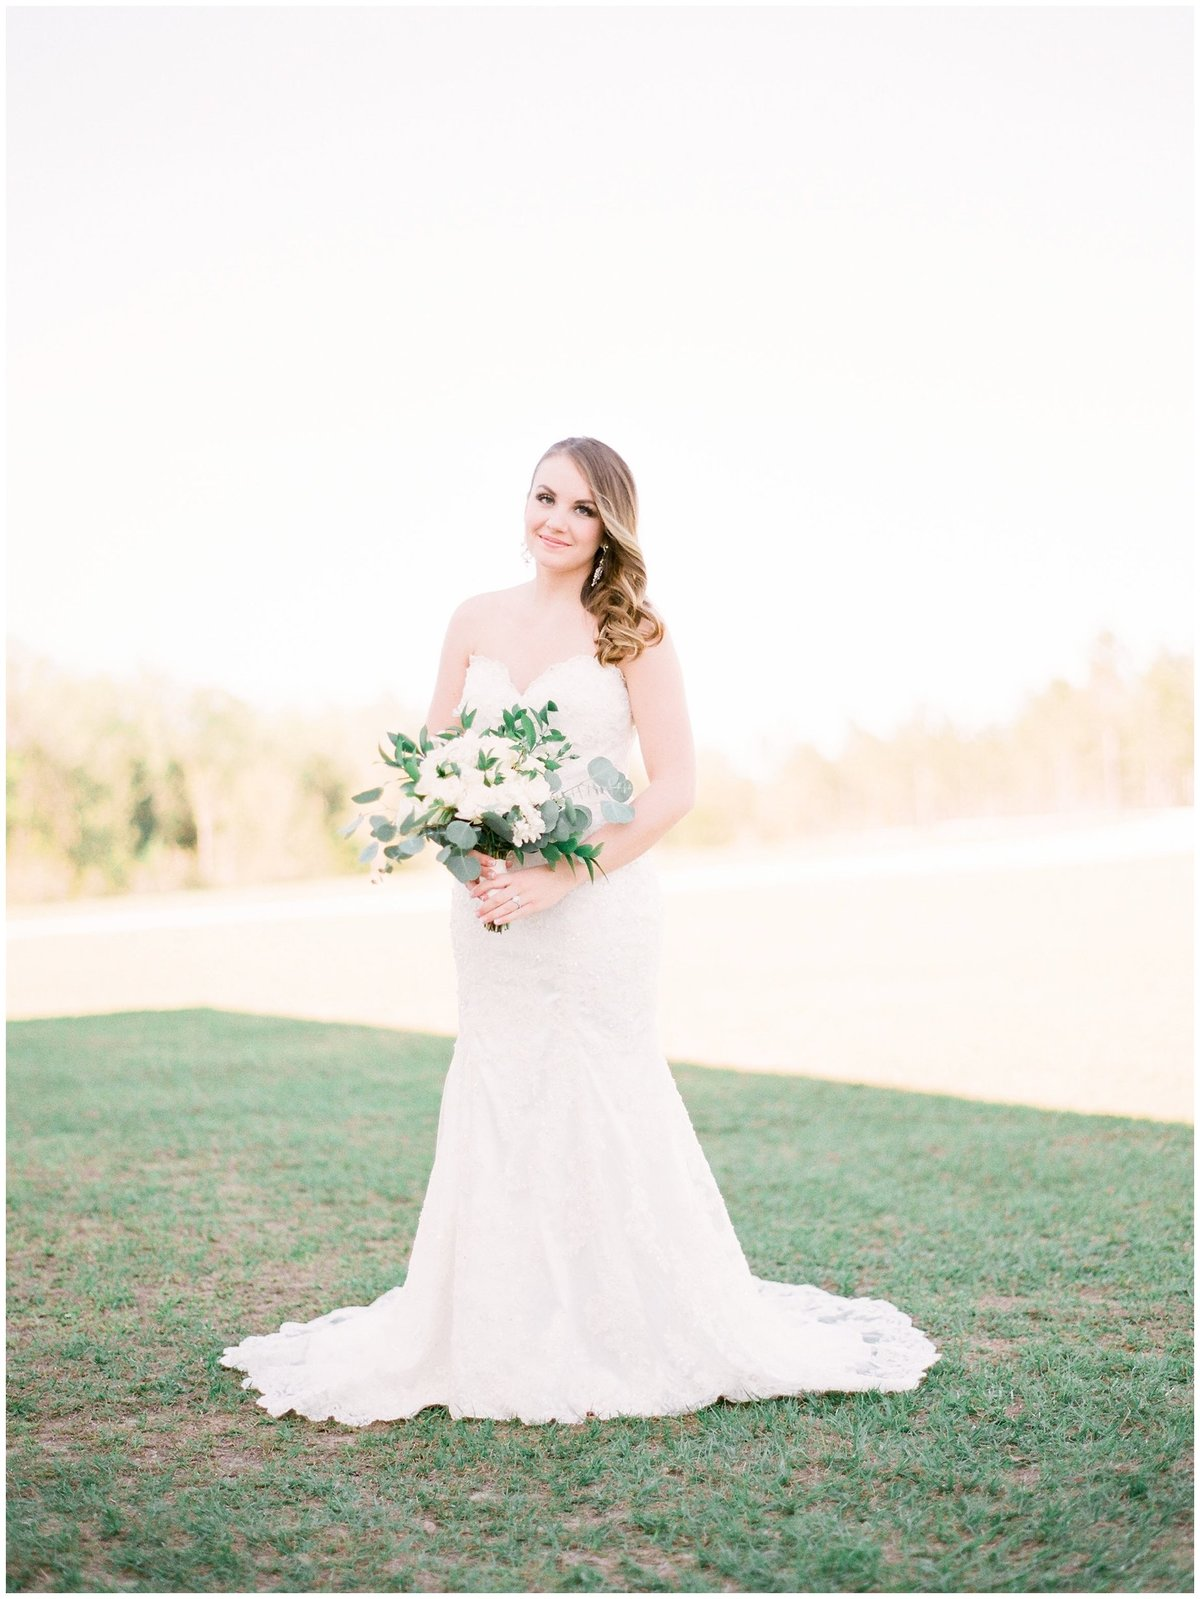 Jesse-Carleton-Panama City Florida-Wedding-Photographer-Barn Weddings-Session-Photography-Rosie Creek Farms-destination photographer_0192